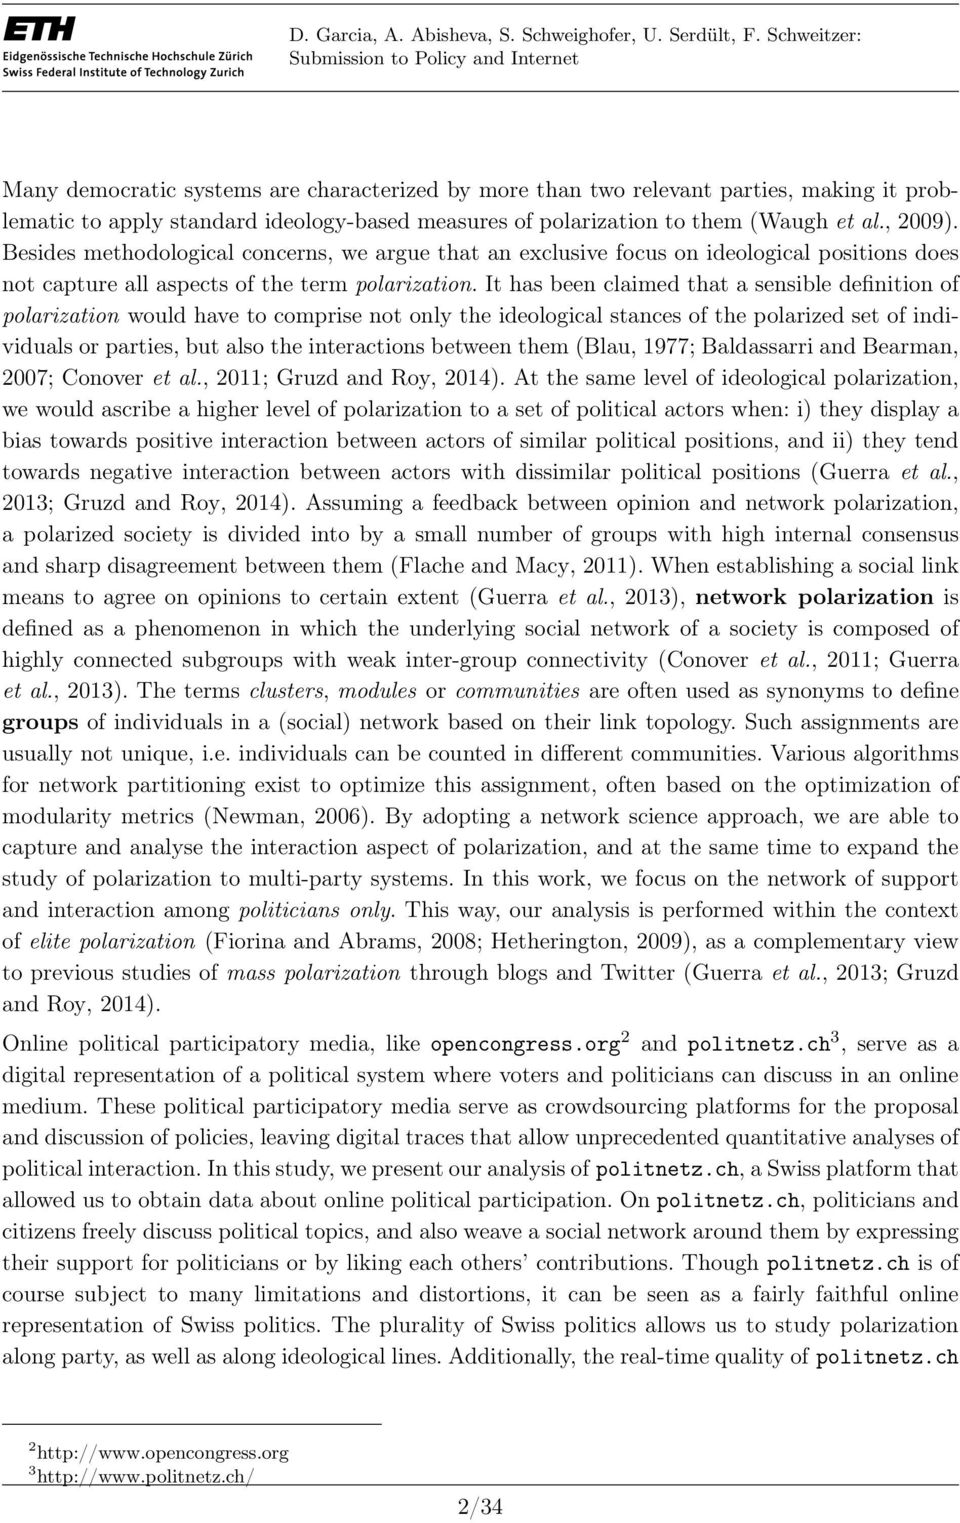 It has been claimed that a sensible definition of polarization would have to comprise not only the ideological stances of the polarized set of individuals or parties, but also the interactions